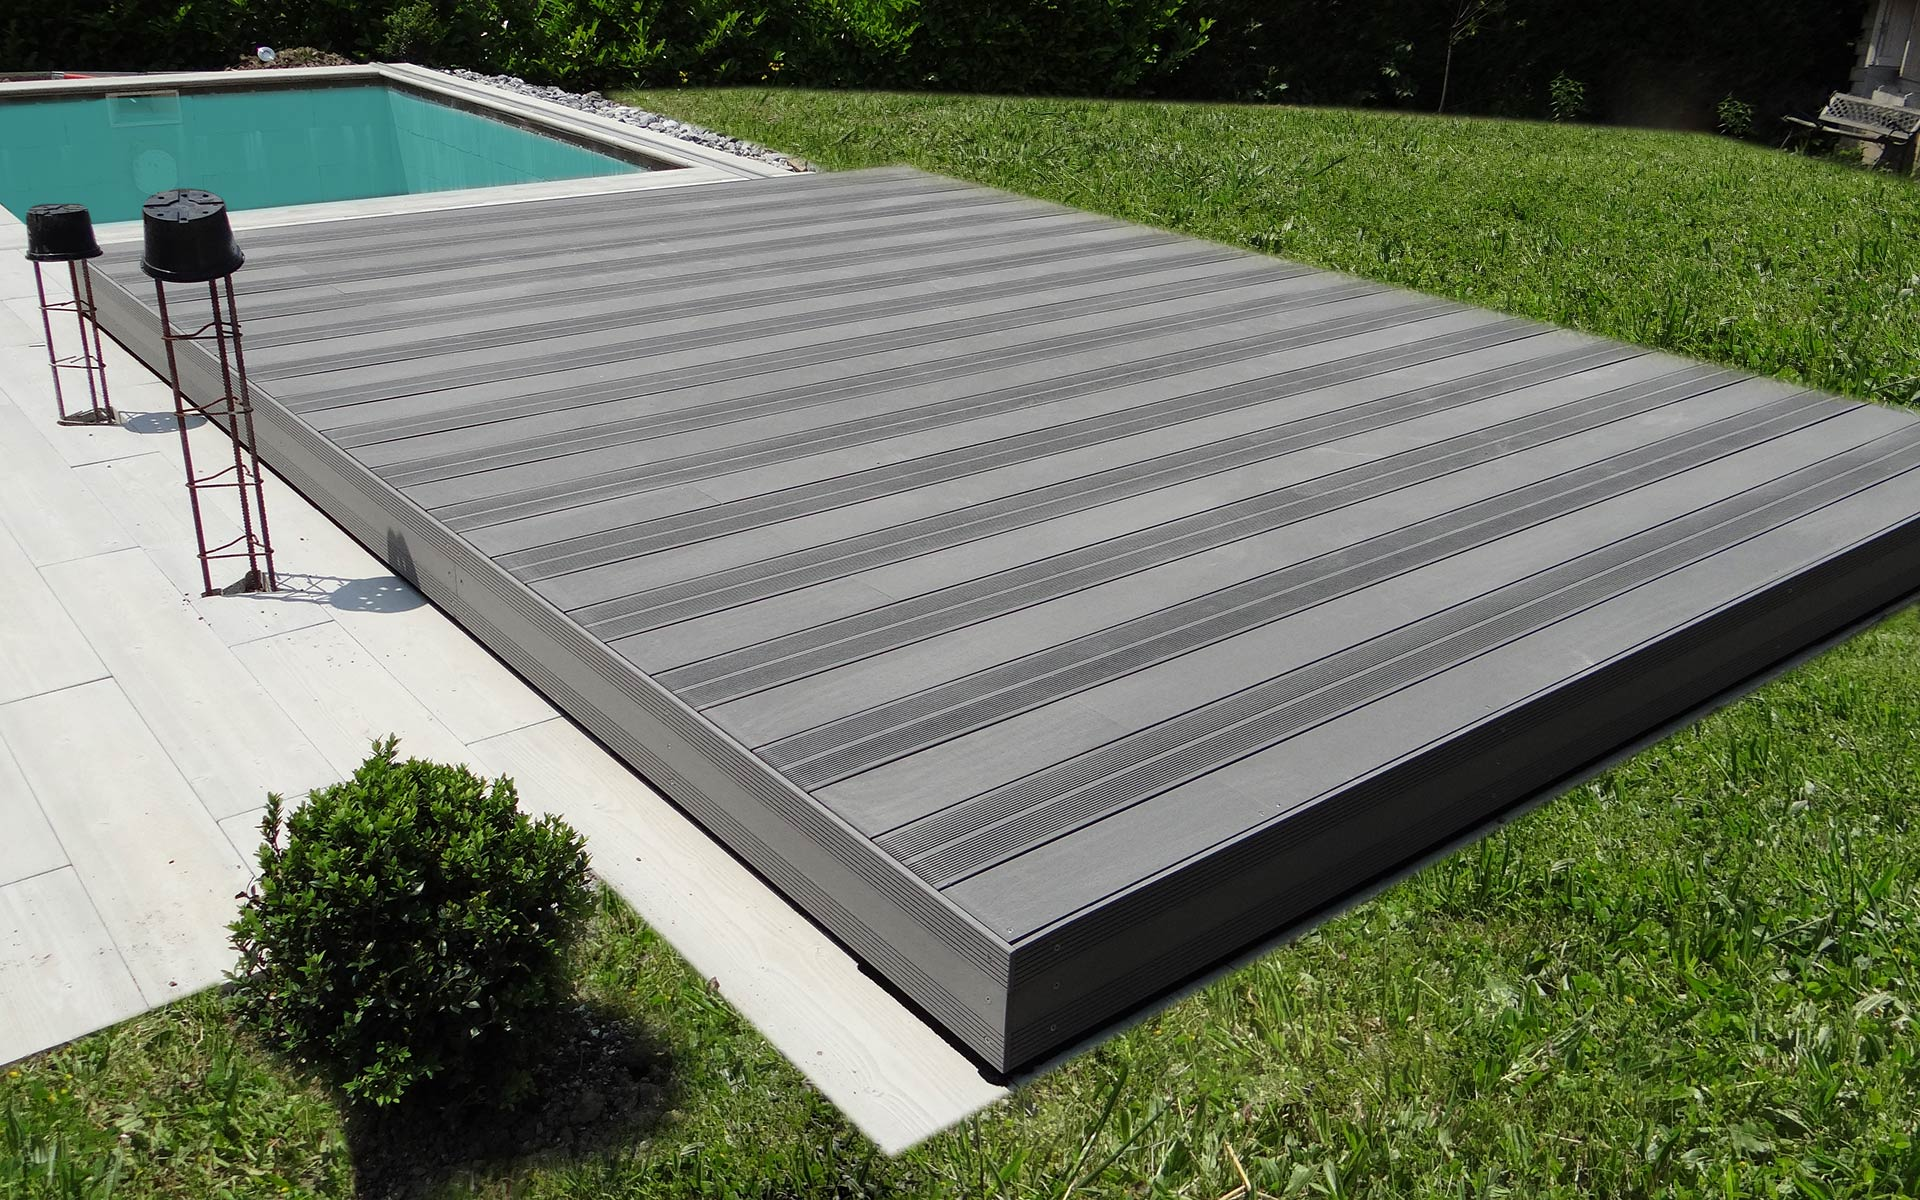 Terrasse mobile pour piscine hidden pool fond mobile for Piscine fond mobile sans cable